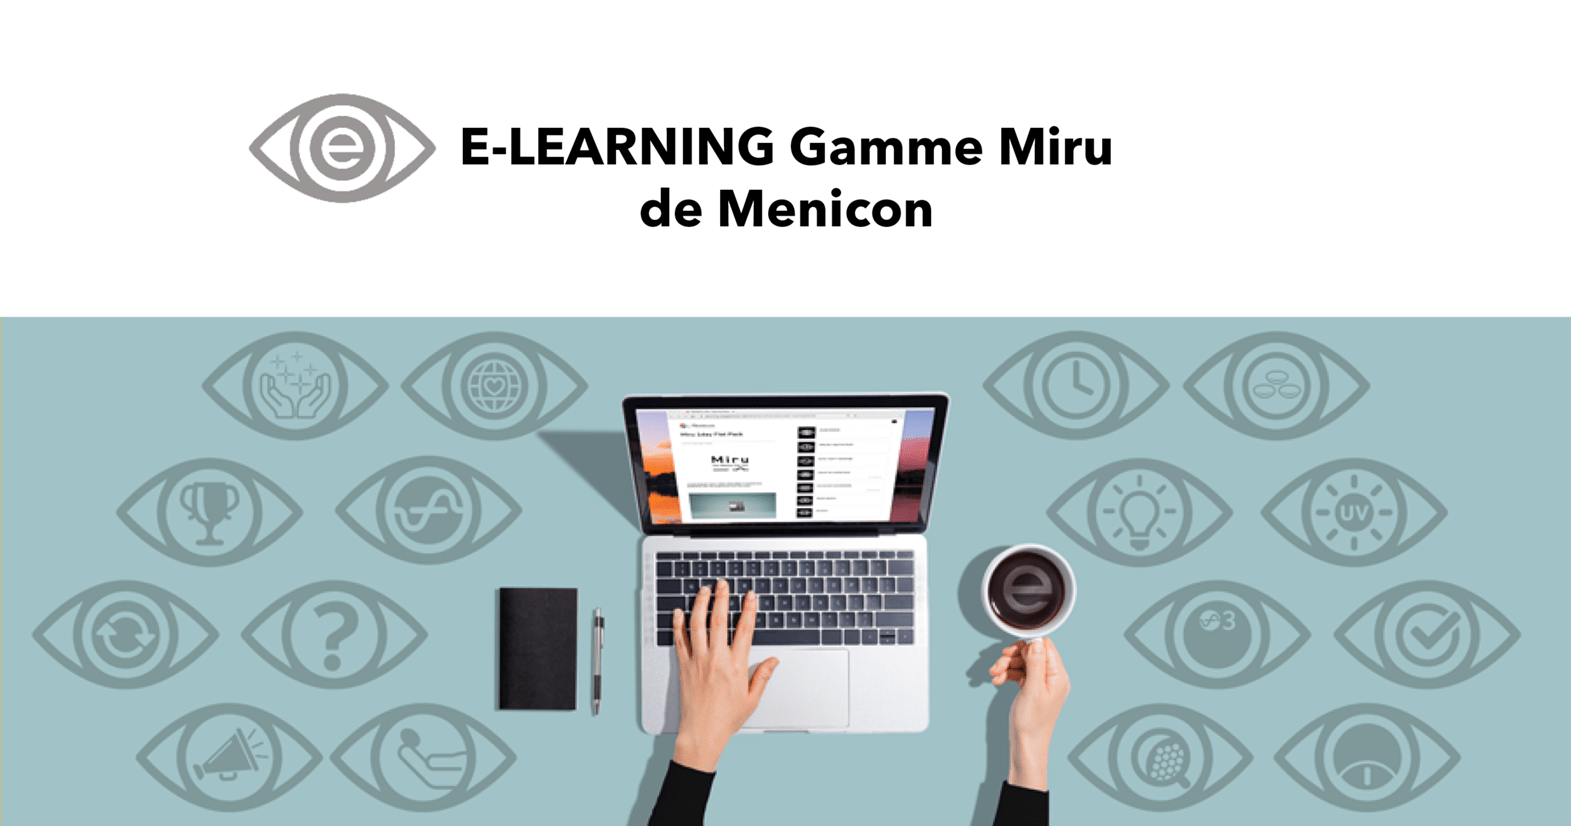 Photo de l'actualite campusmenicon - E-LEARNING Gamme Miru de Menicon